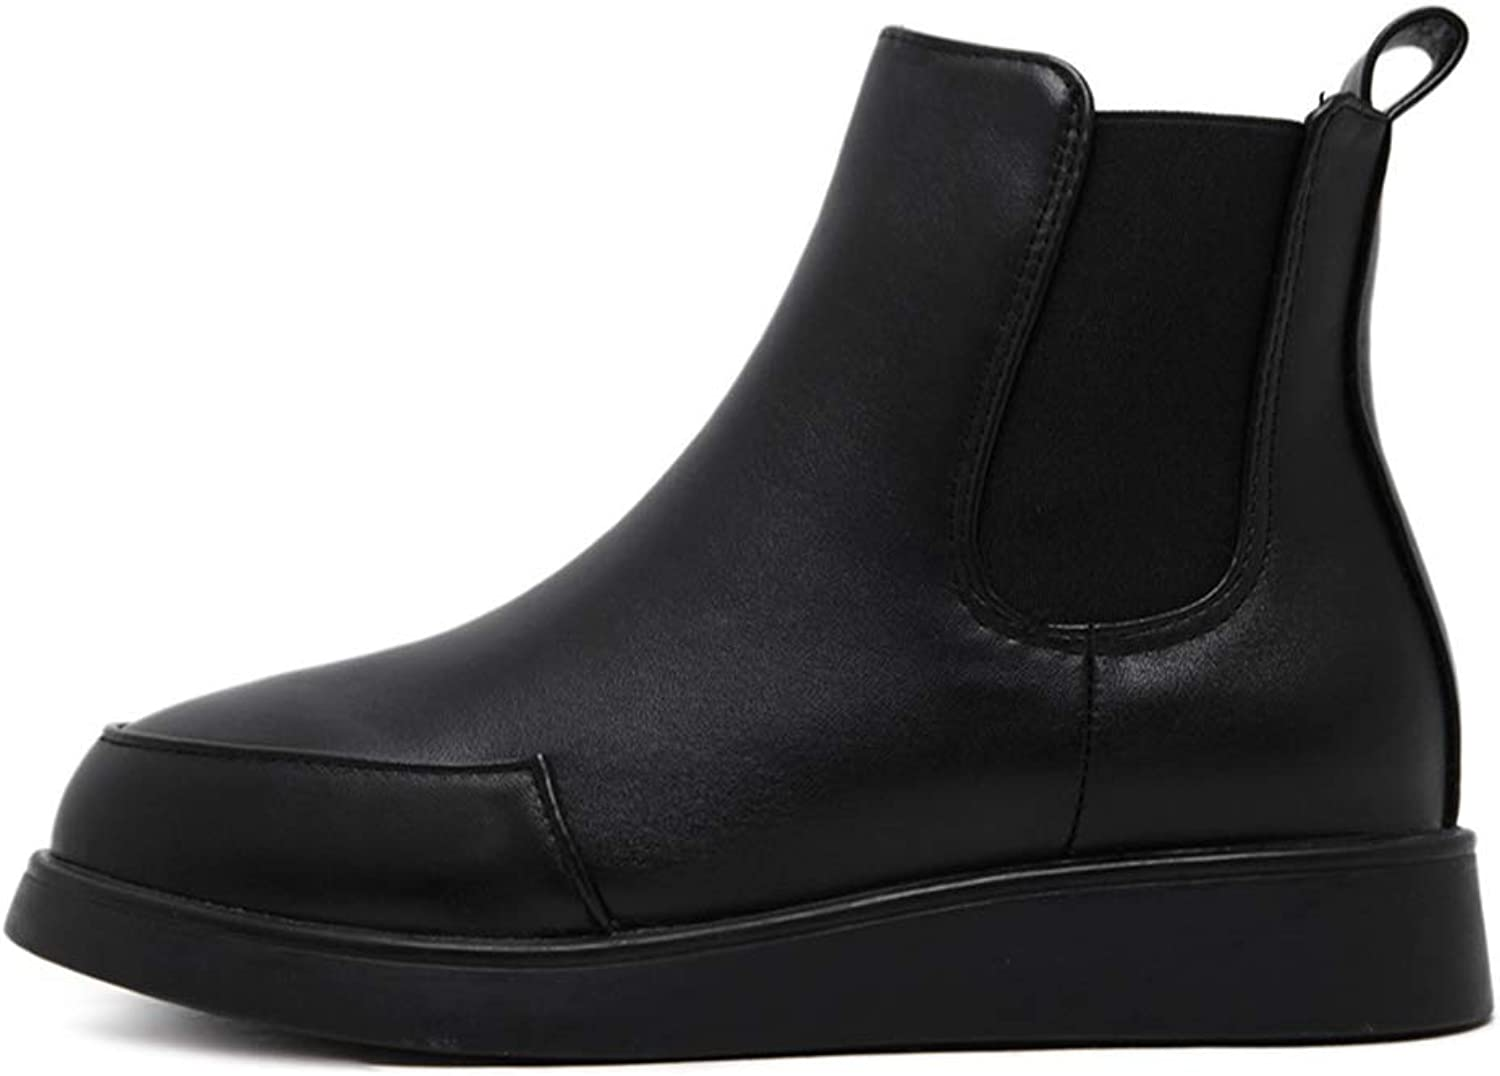 Ankle Boots, Waterproof Booties, Non-Slip Sole, Casual shoes